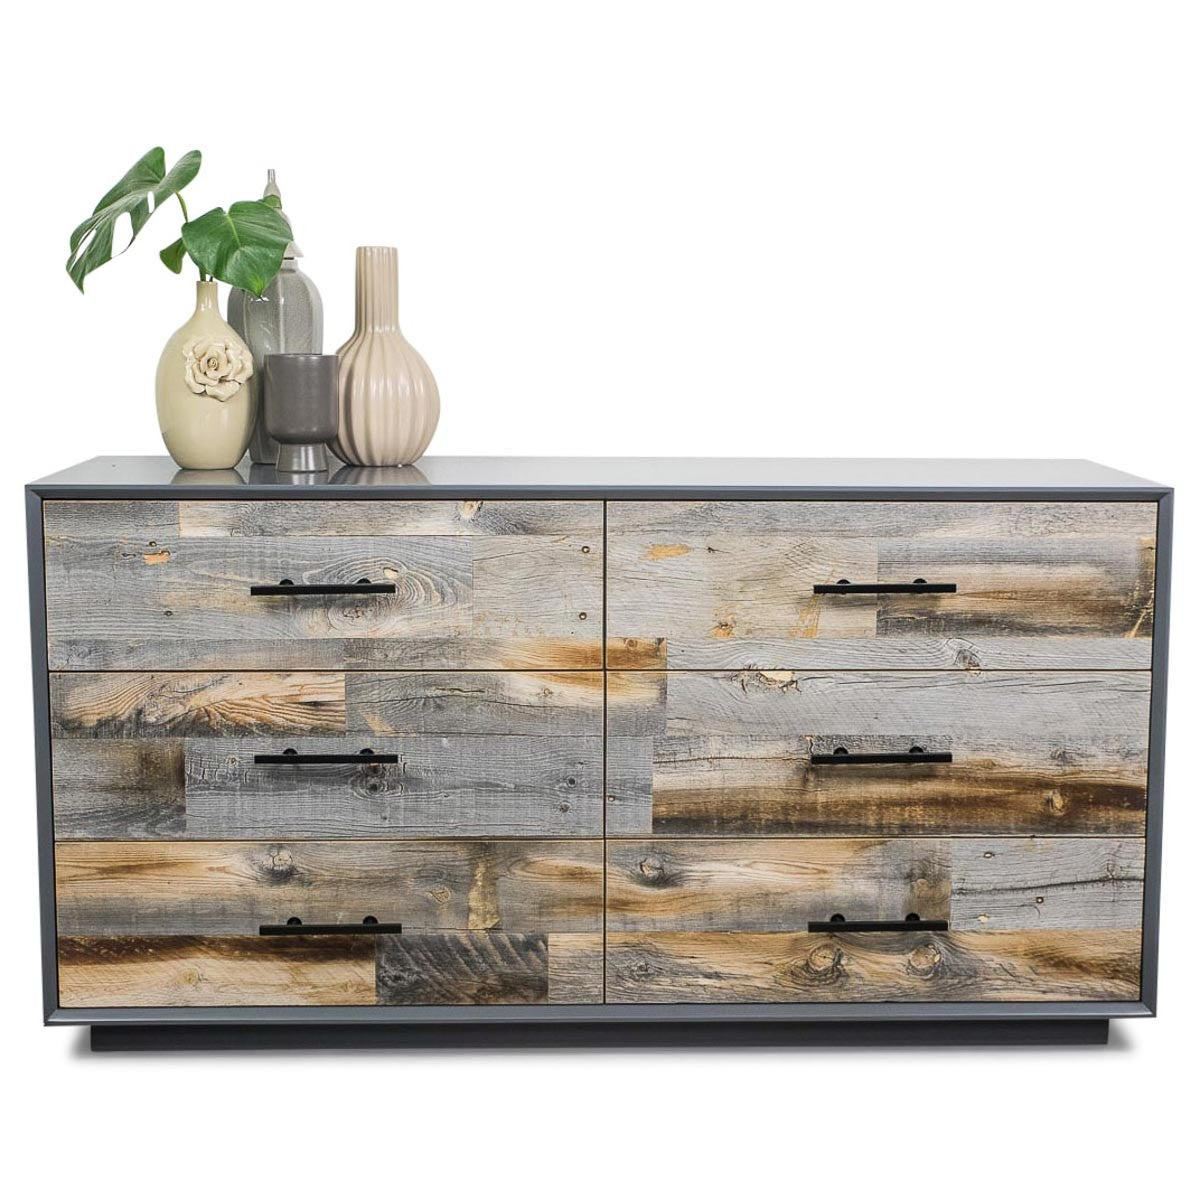 Grey Cody Dresser with Grey Recycled Wood - ModShop1.com